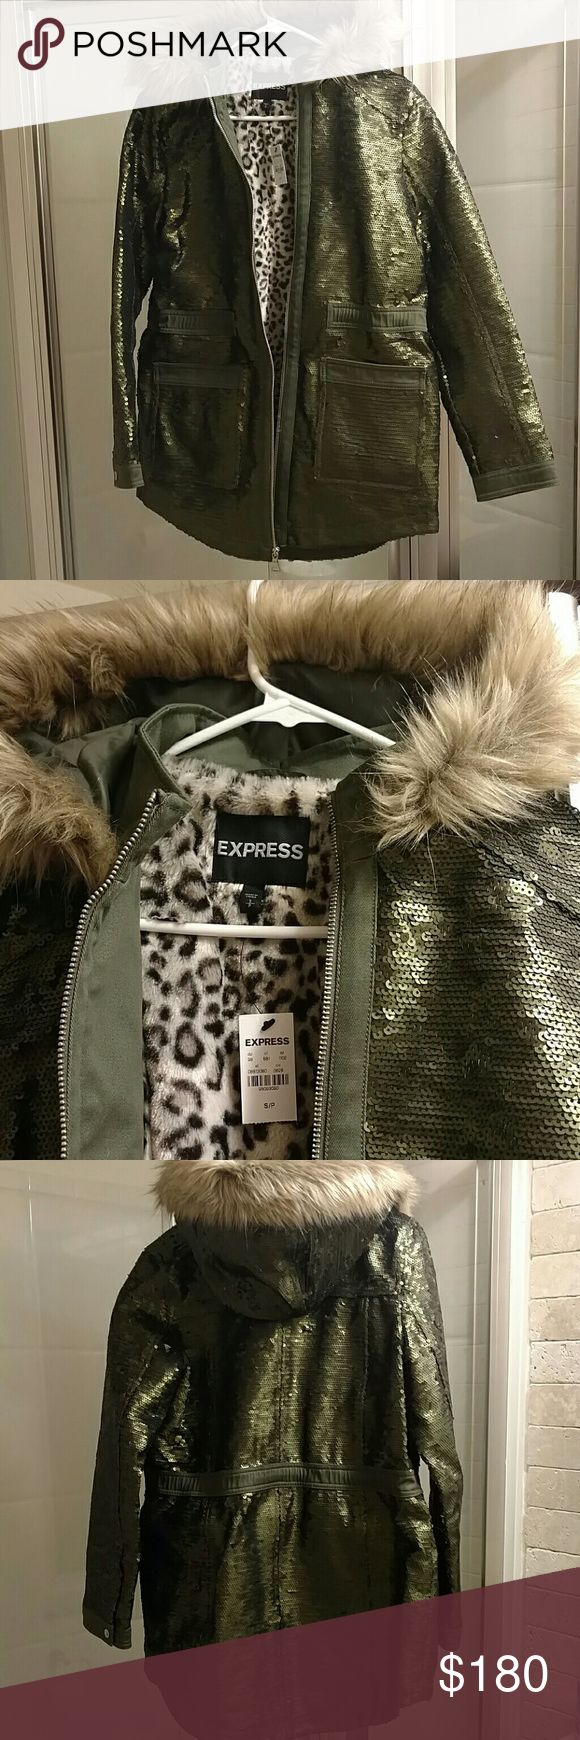 Express Olive green sequin coat Very cool. Olive green sequins cover this coat. Faux fur hood trim. Faux leopard fur inside. NWT, never worn. Thanks for looking!! Express Jackets & Coats